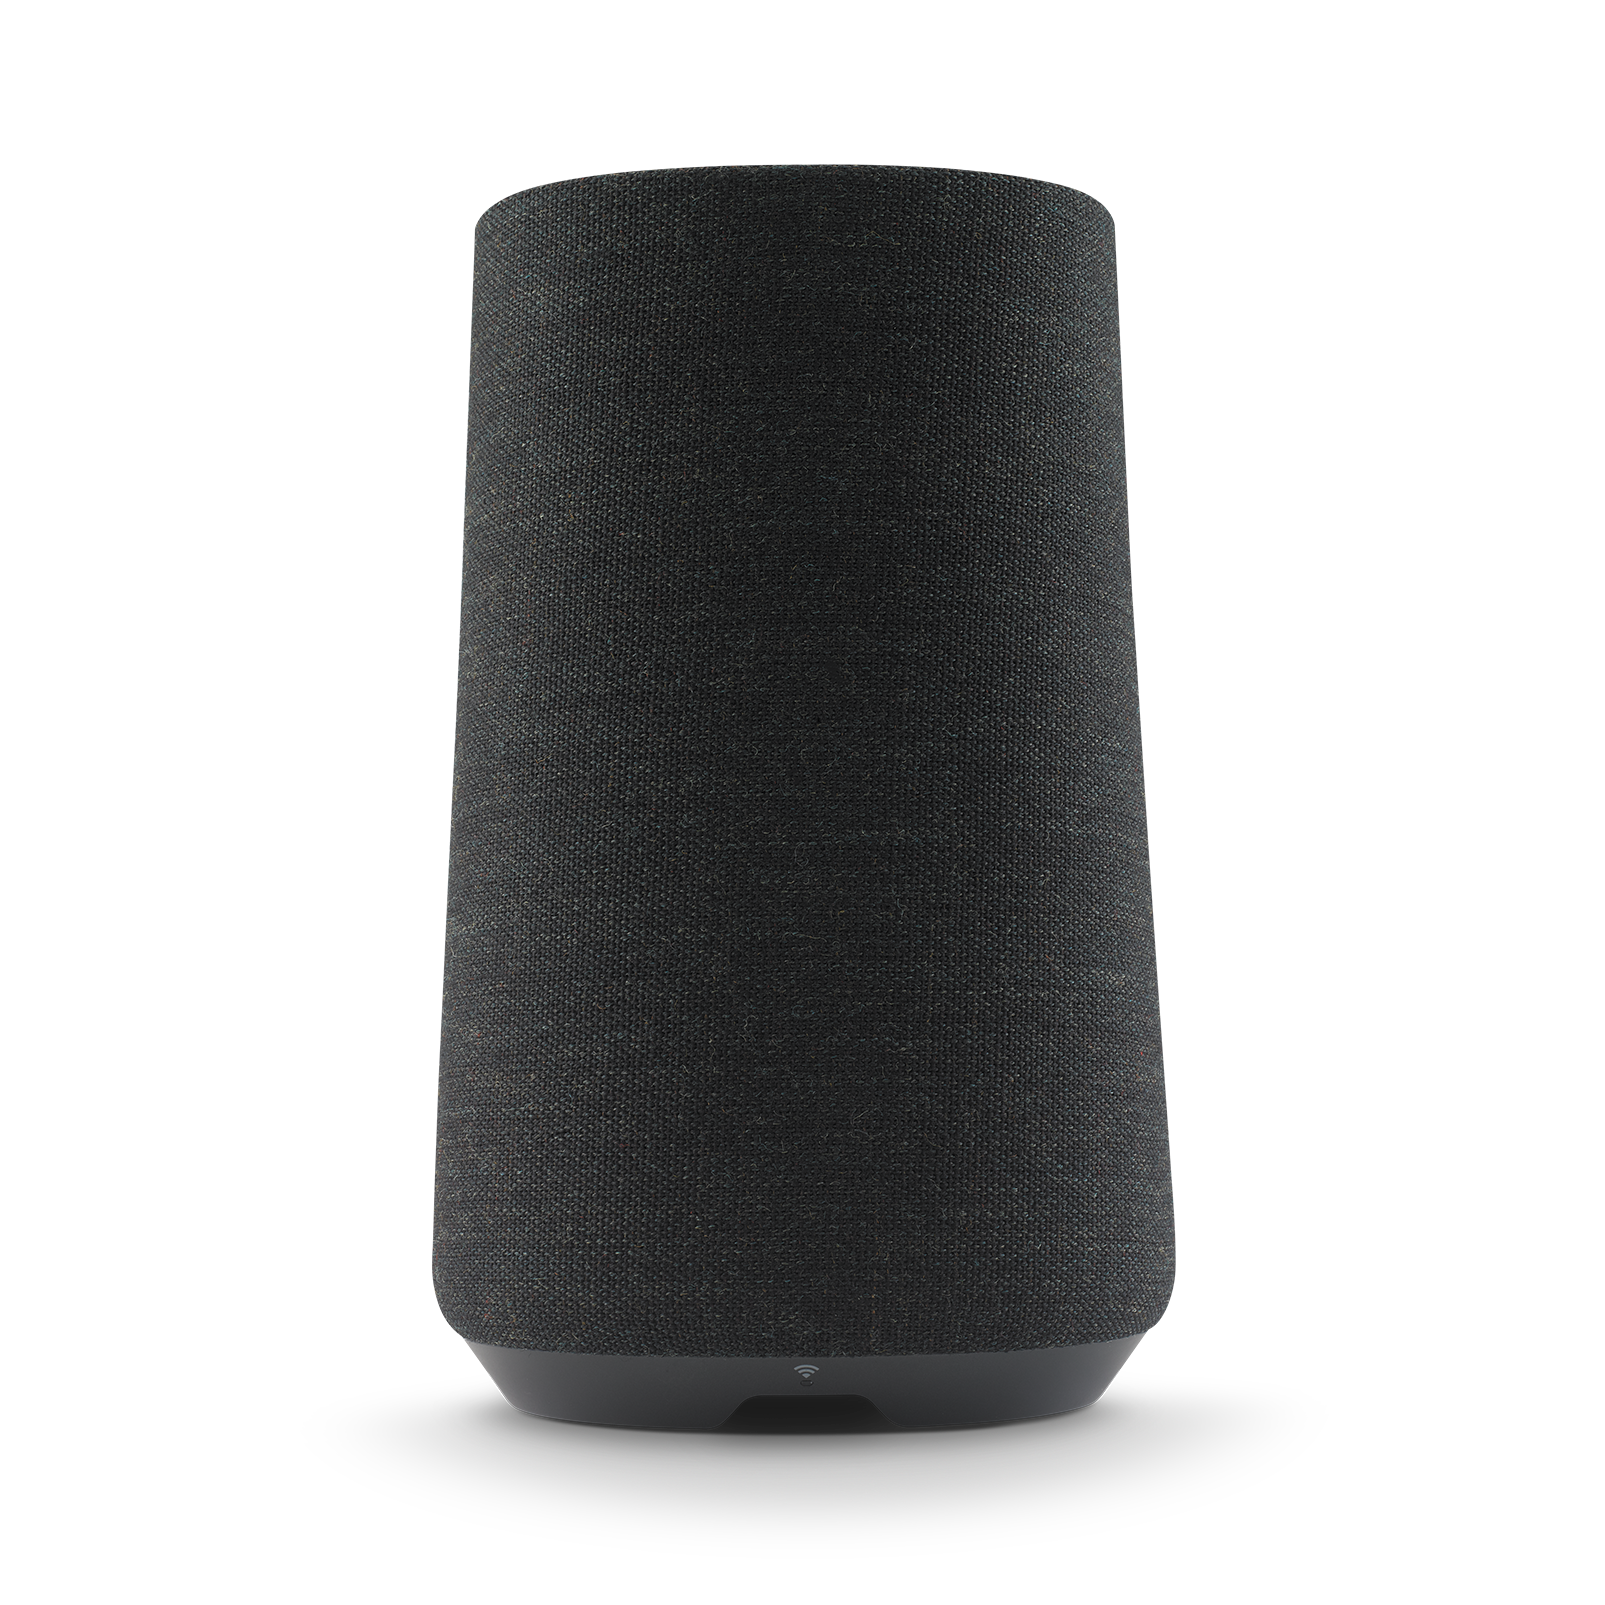 Harman Kardon Citation 100 - Black - The smallest, smartest home speaker with impactful sound - Back